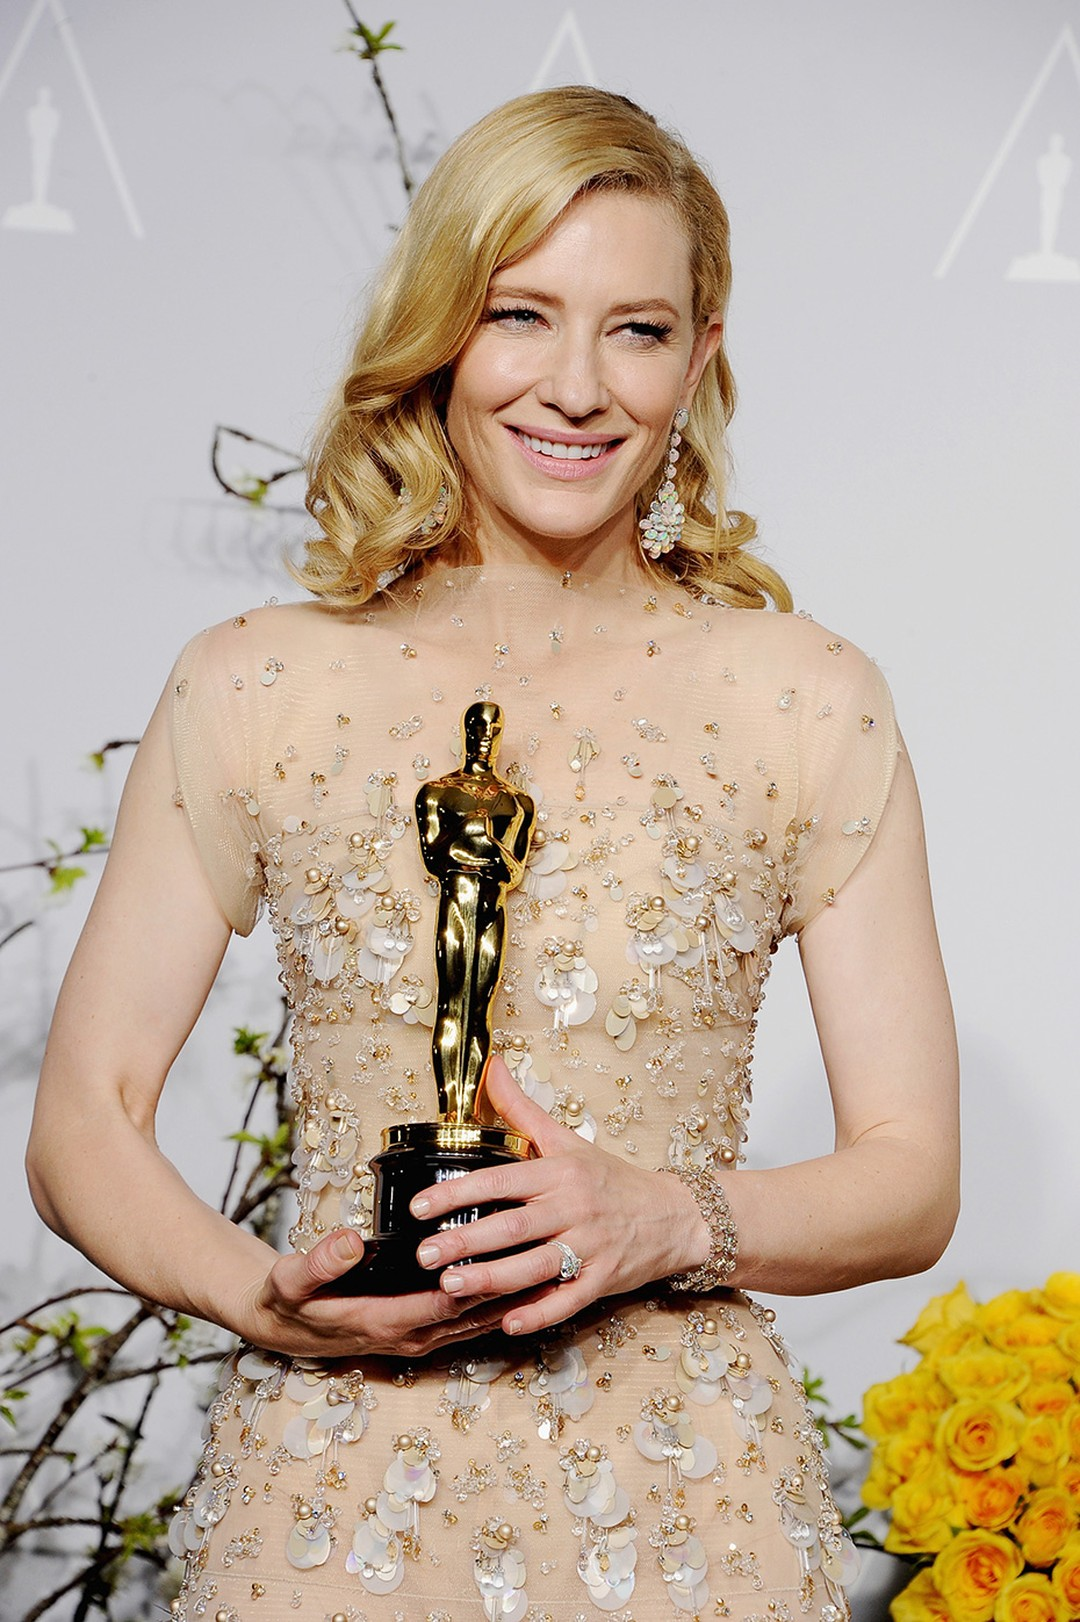 Cate Blanchett is all smiles with her Academy Award and Chopard Red Carpet Collection earrings.